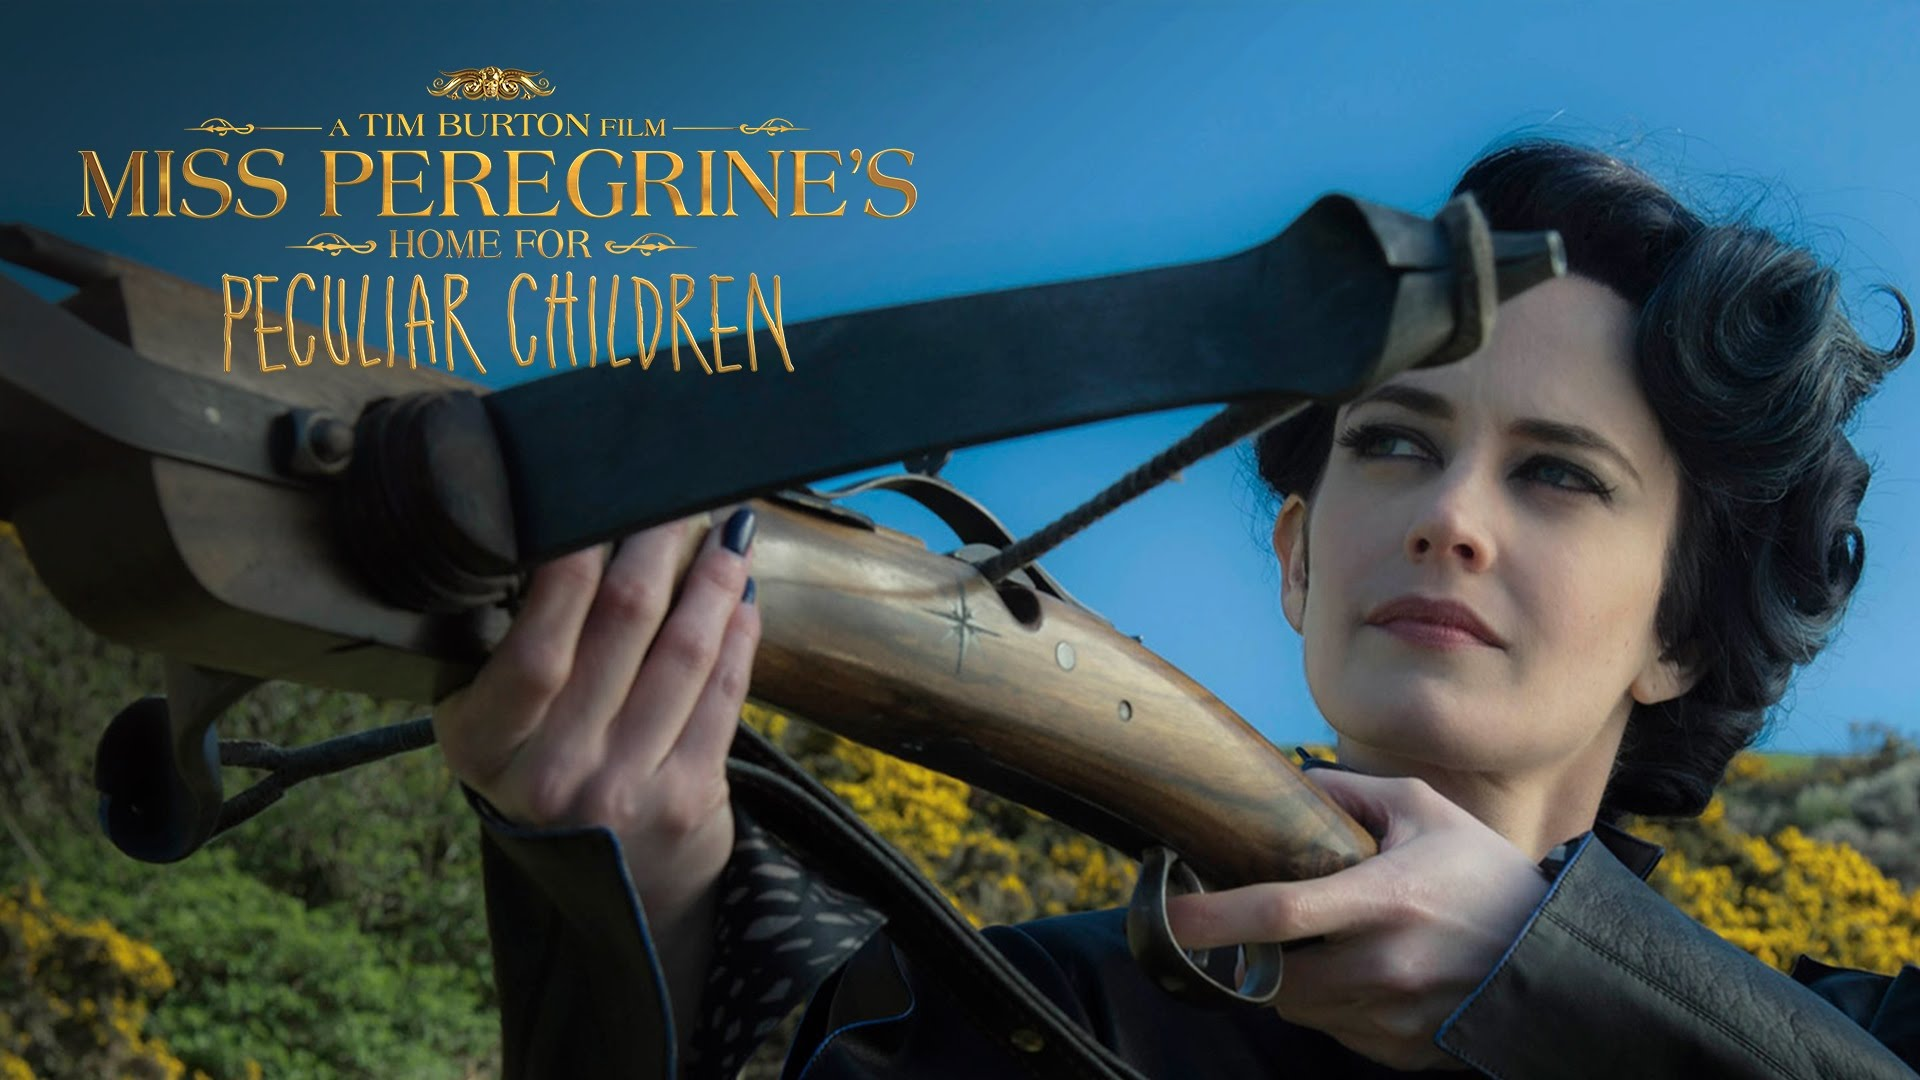 Miss-Peregrines-Home-For-Peculiar-Children-15Março2016-2